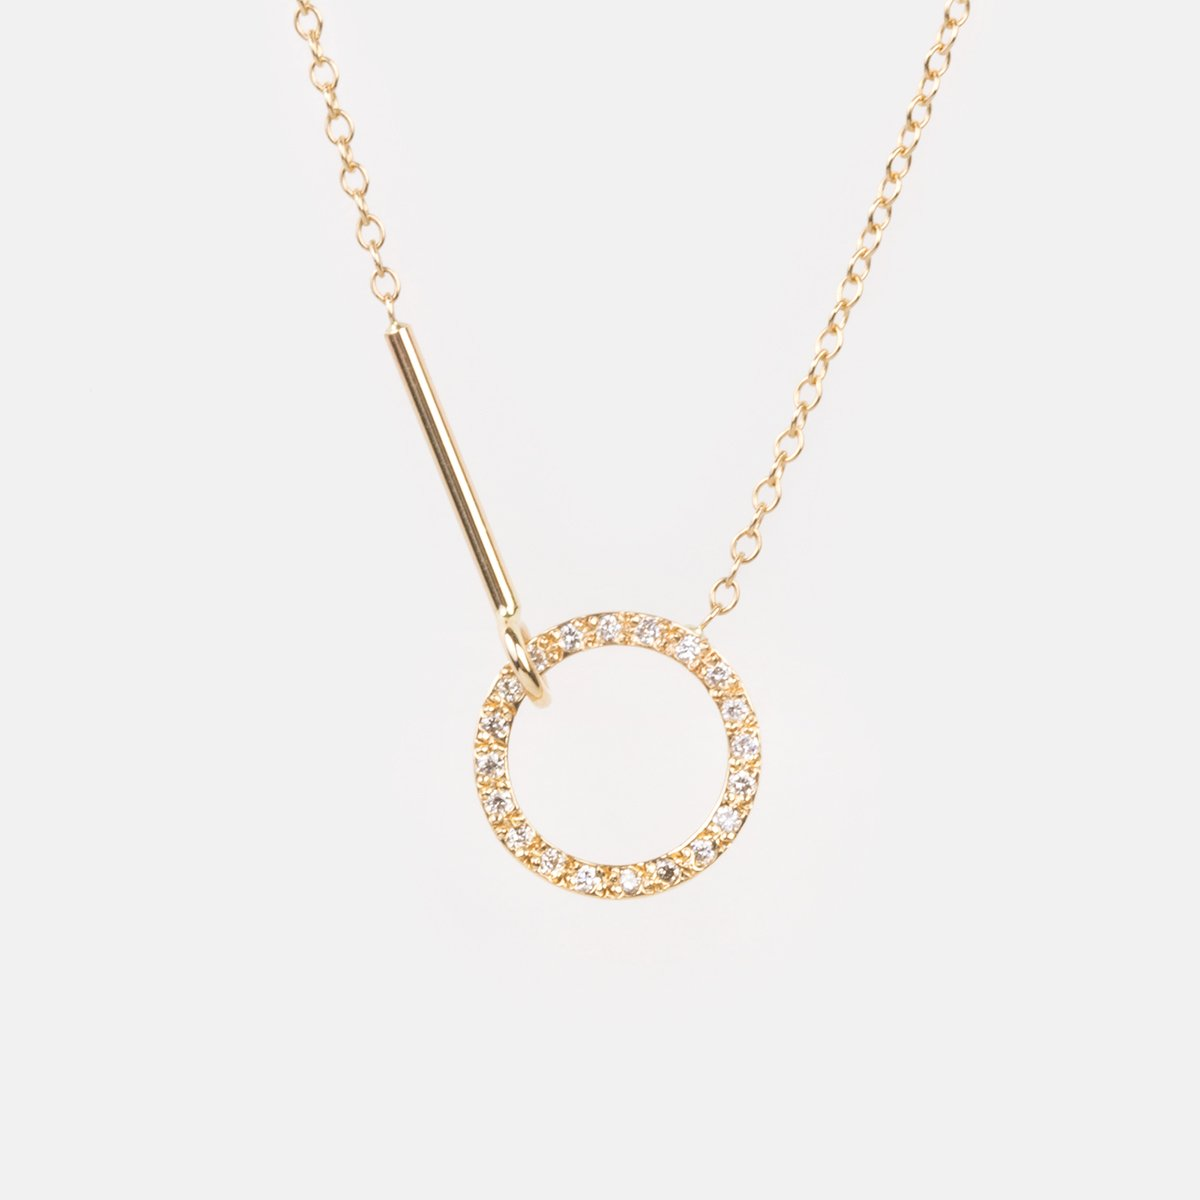 SH Visata Pave Necklace